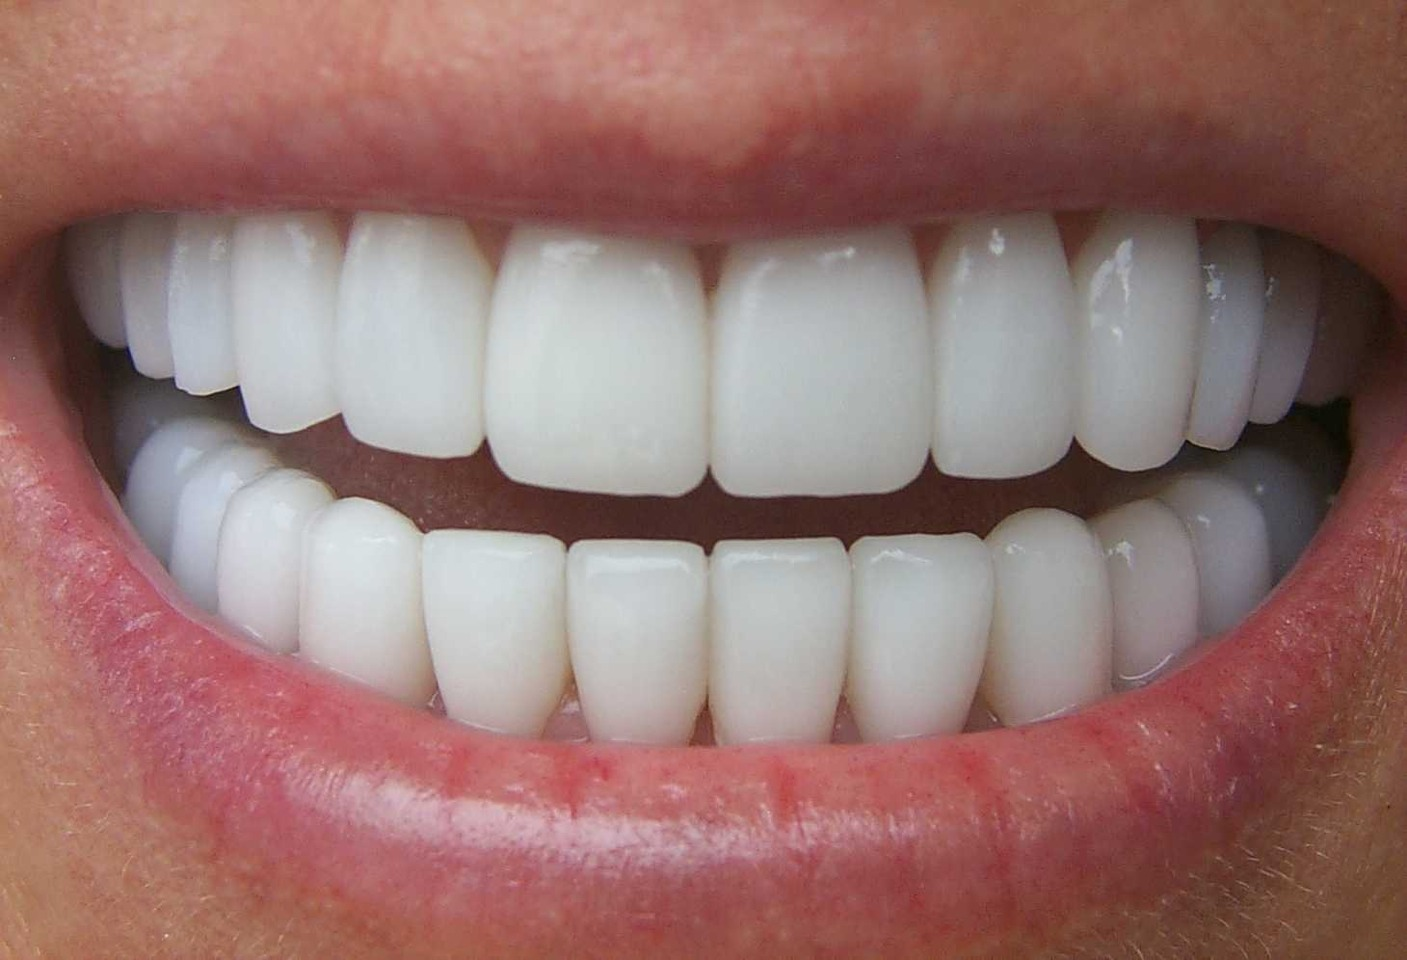 Apply Vaseline to your teeth to prevent lipstick sticking to your teeth